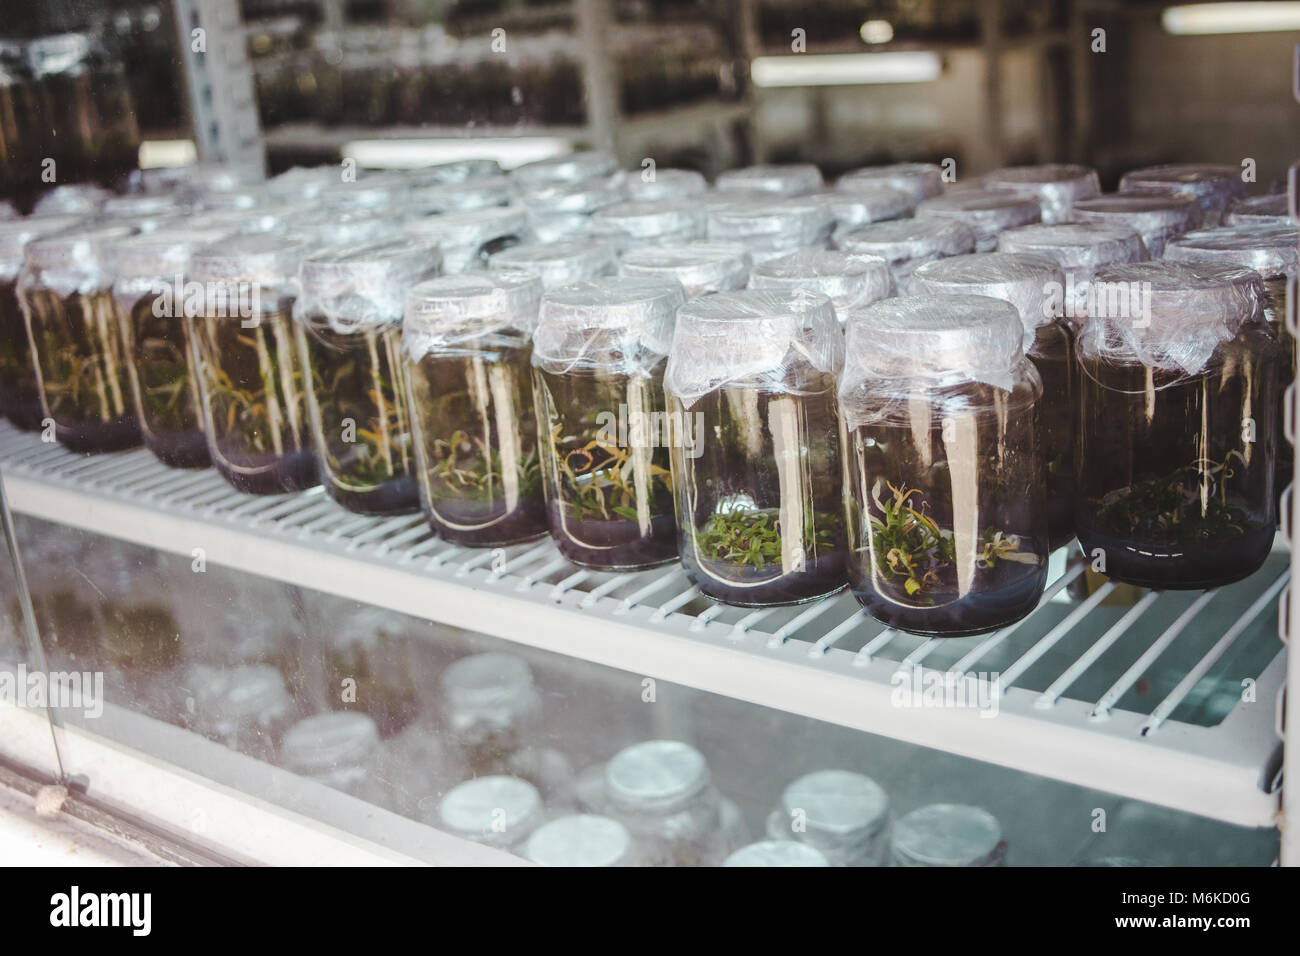 Plants being grown in a controlled light environment in glass jars as part of a scientific / biology experiment - Stock Image